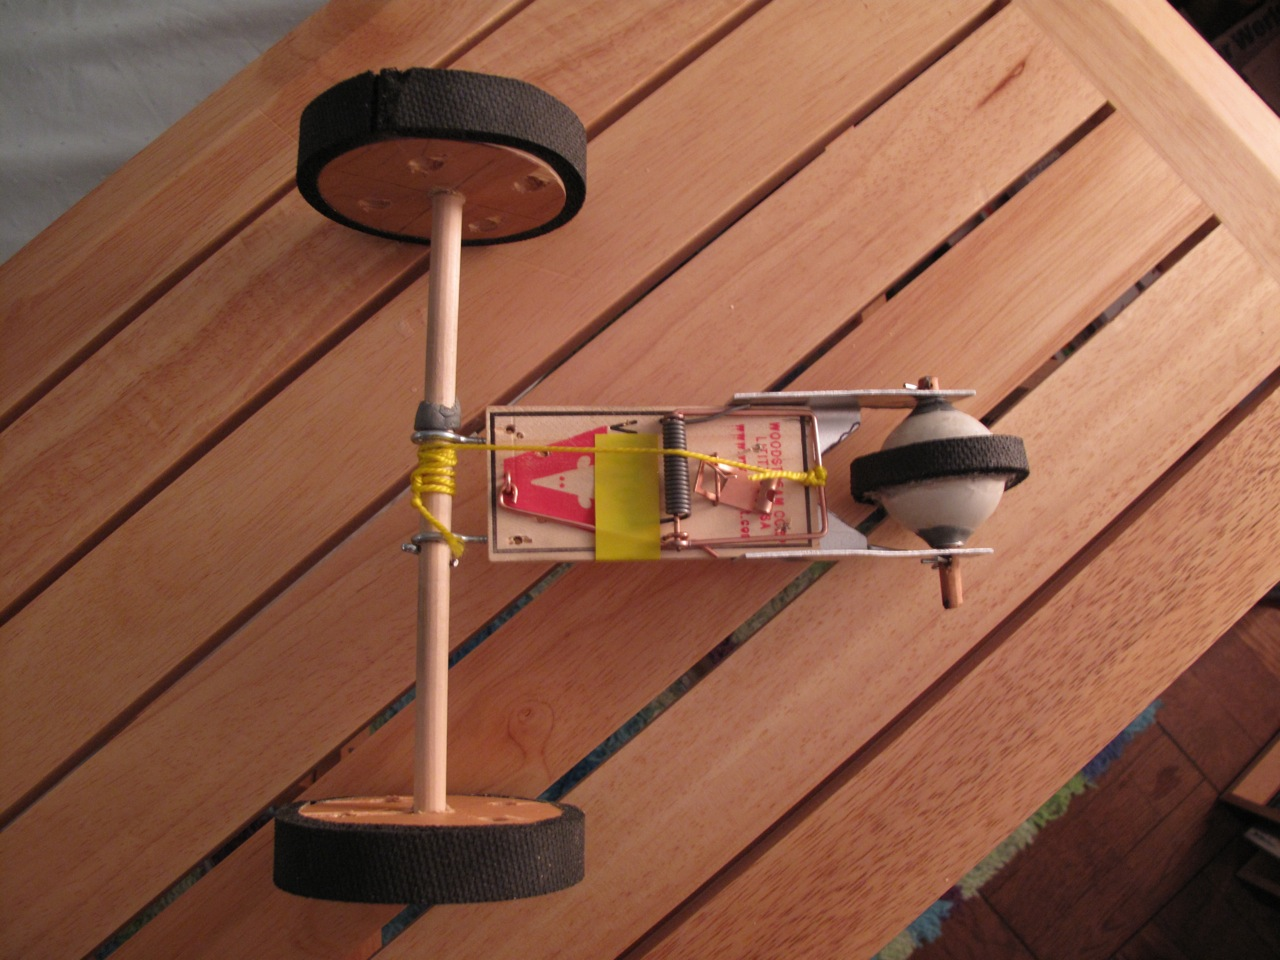 mouse trap car report description of Mouse trap car materials list balsa wood – the design of your car will dictate how much and what size balsa wood you will need i recommend going to a hobby shop such as hub hobby to see the different sizes and.